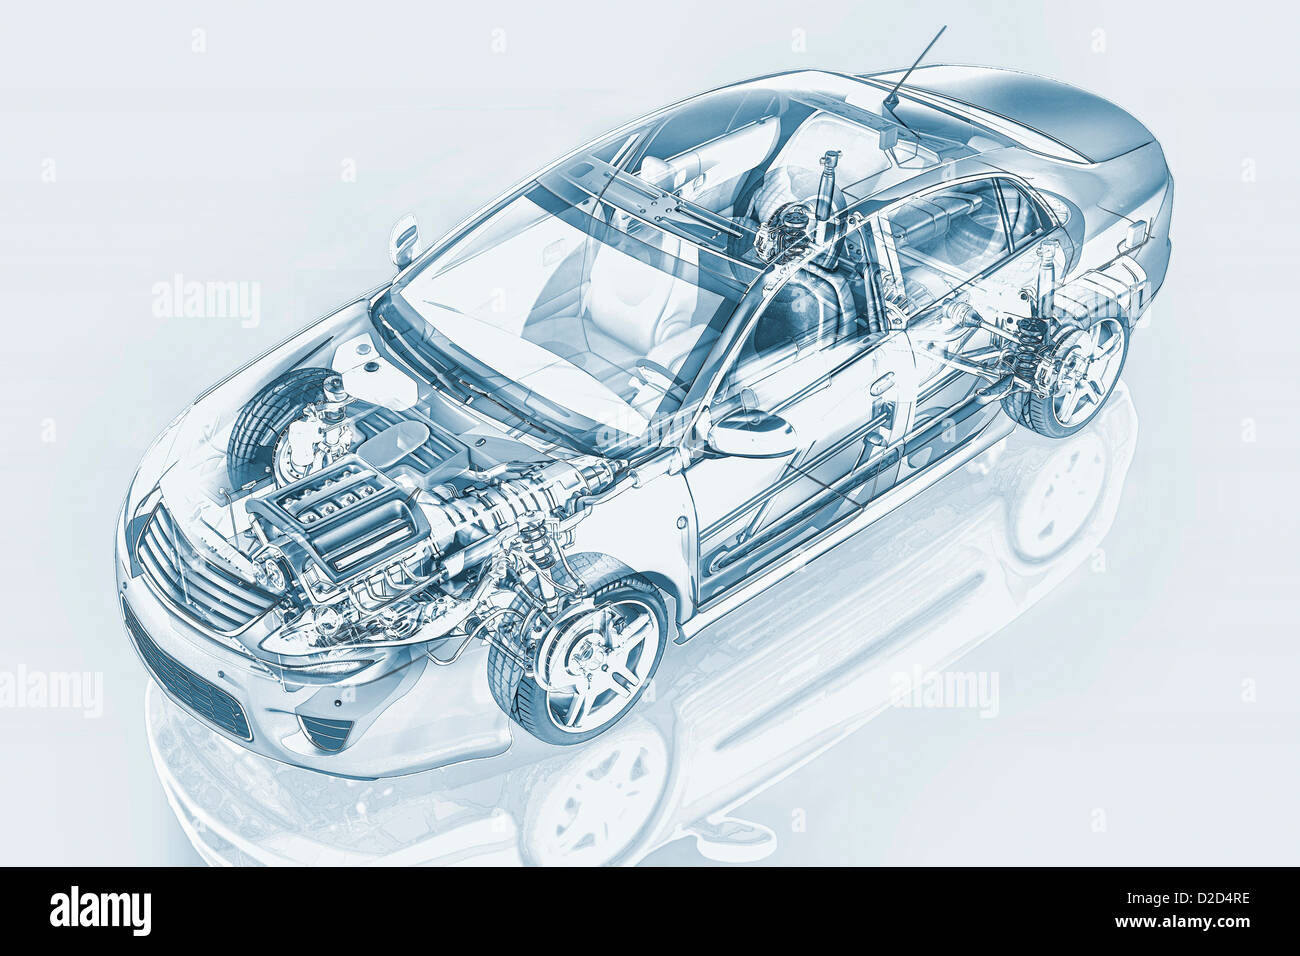 Car Computer artwork showing internal structures - Stock Image